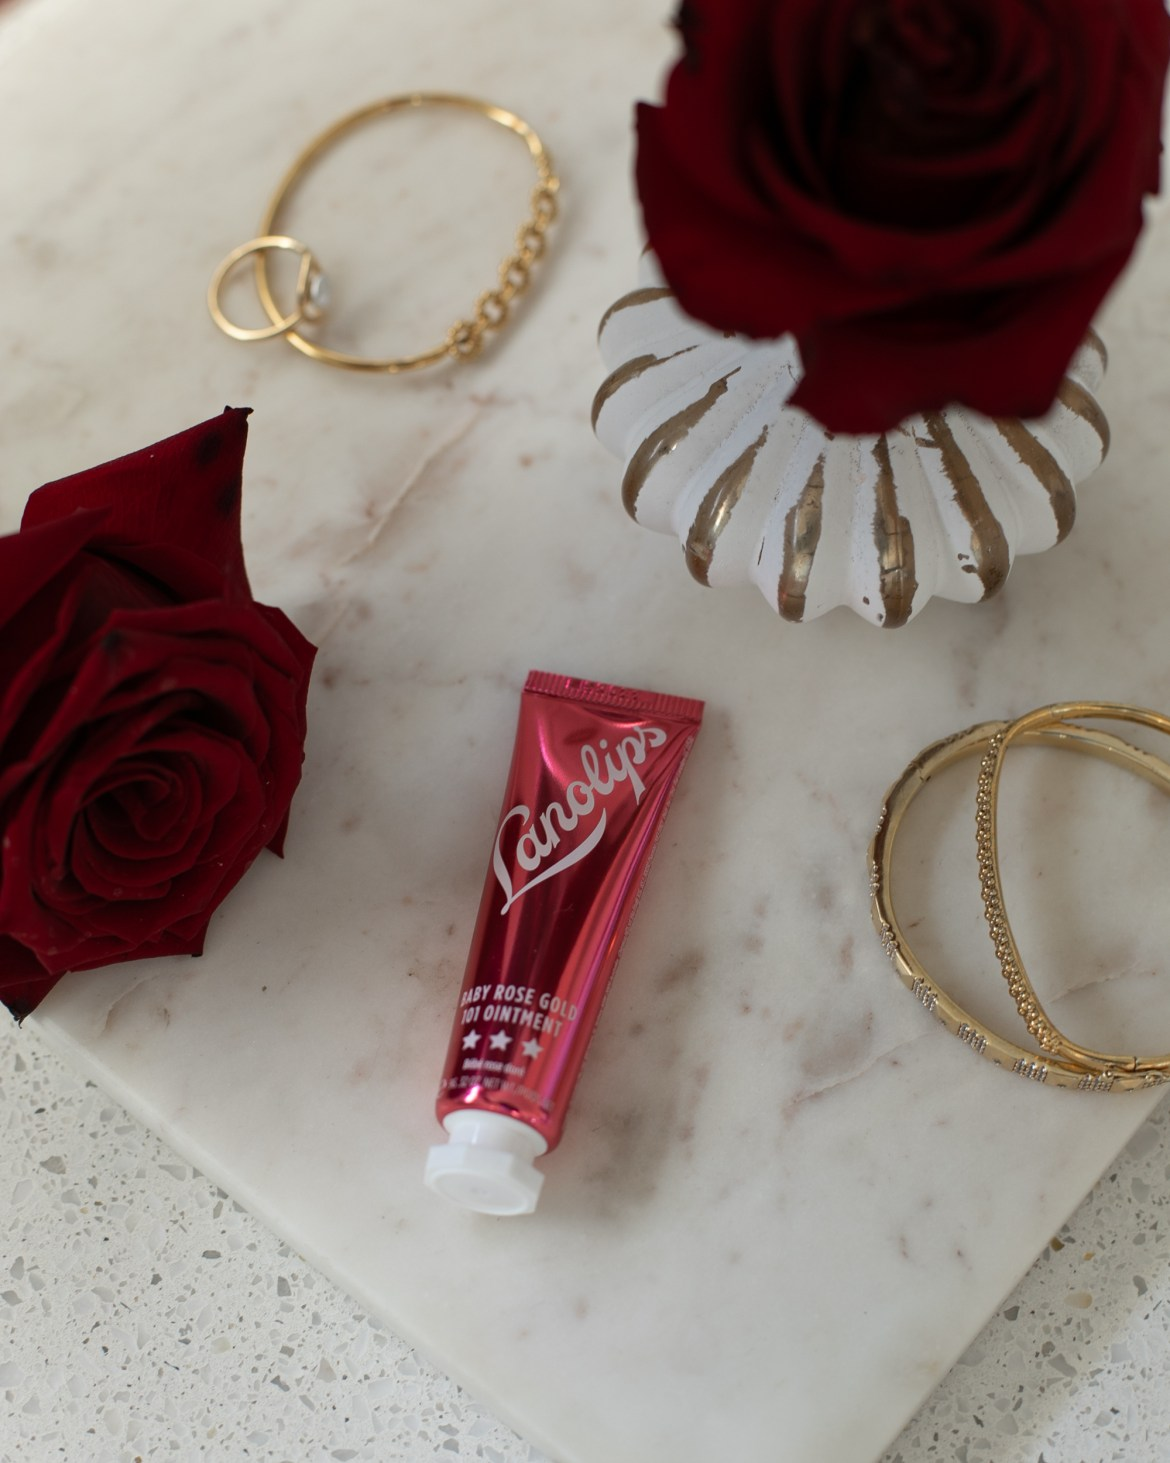 Lanolips baby rose gold ointment for a natural beauty look for Valentine's Day